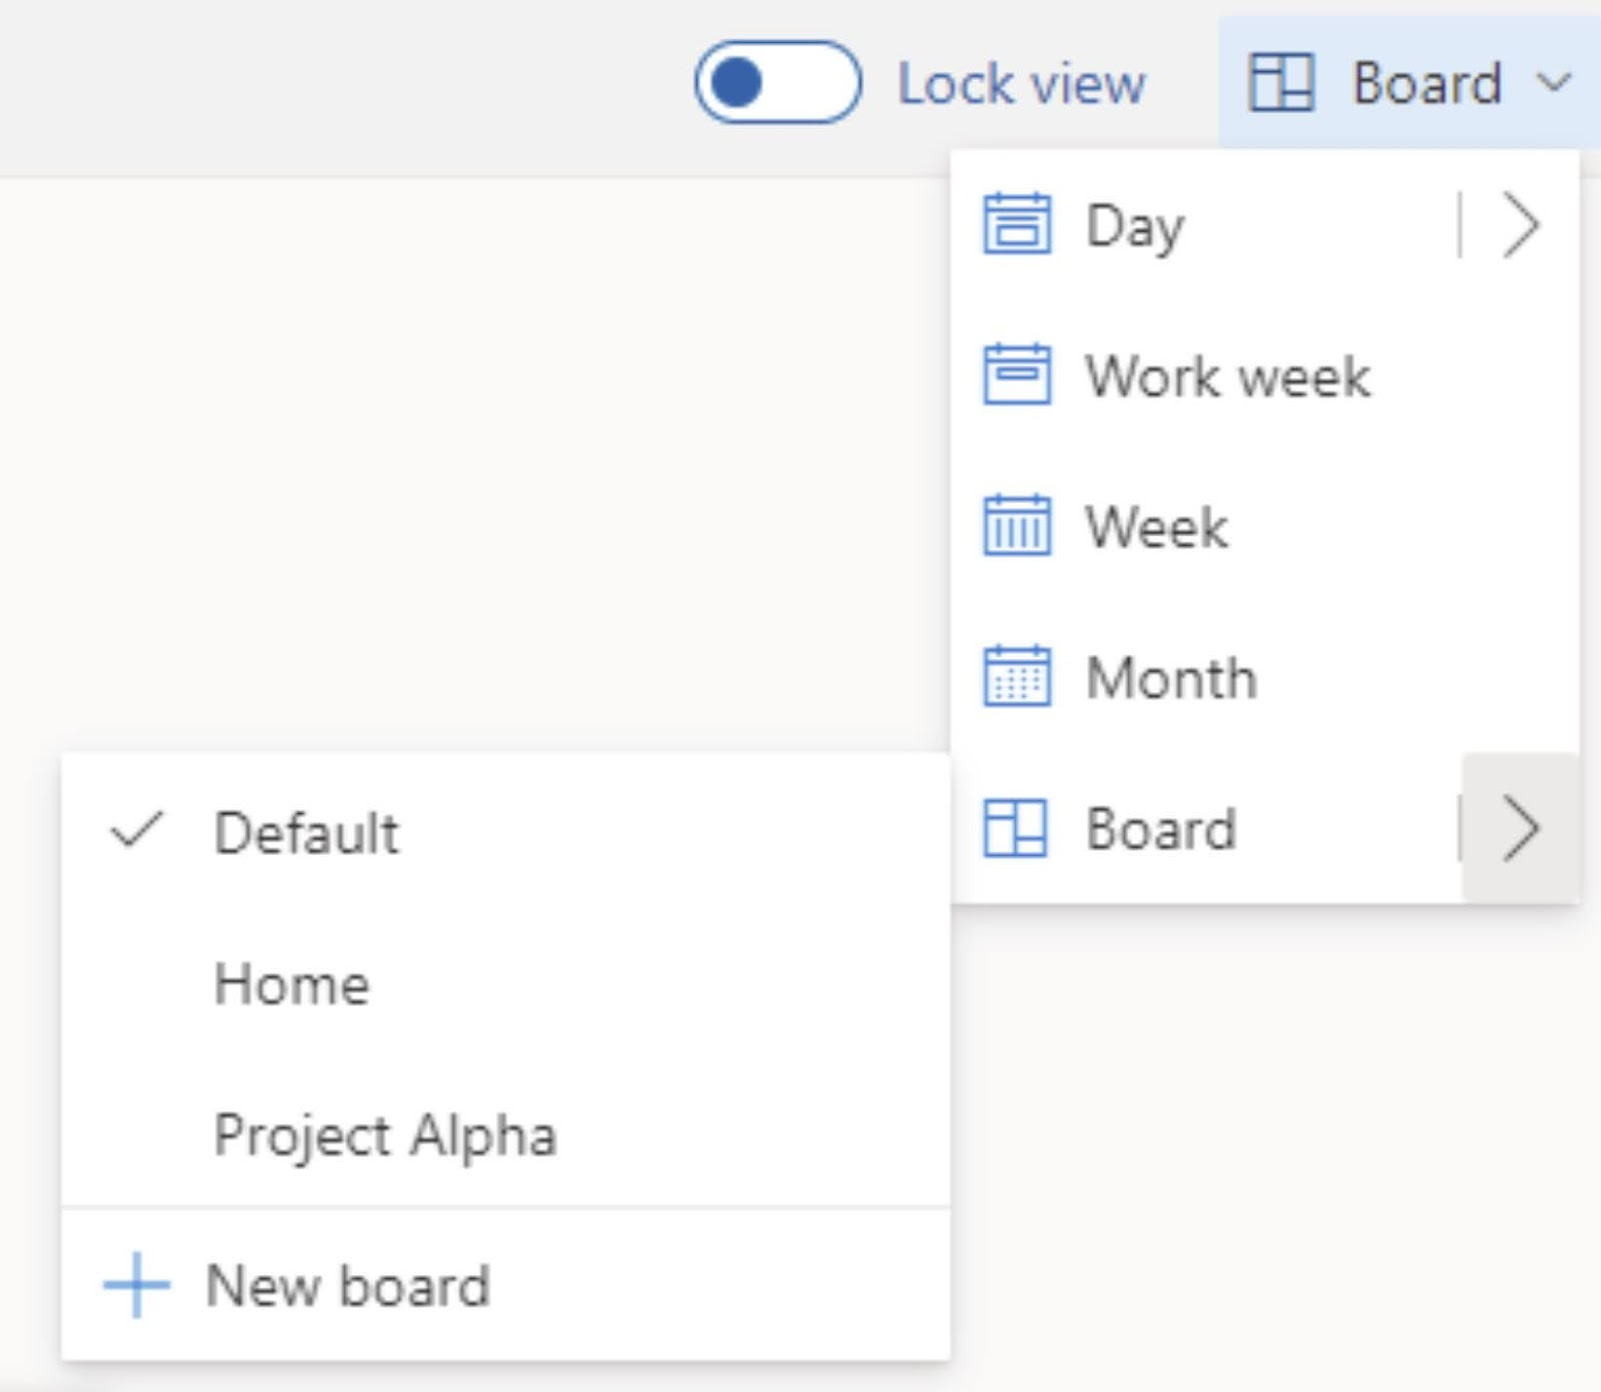 MC271629: Outlook on the web: Project Moca migrating to Outlook board view. Just open the model switcher dropdown to view all your existing boards.